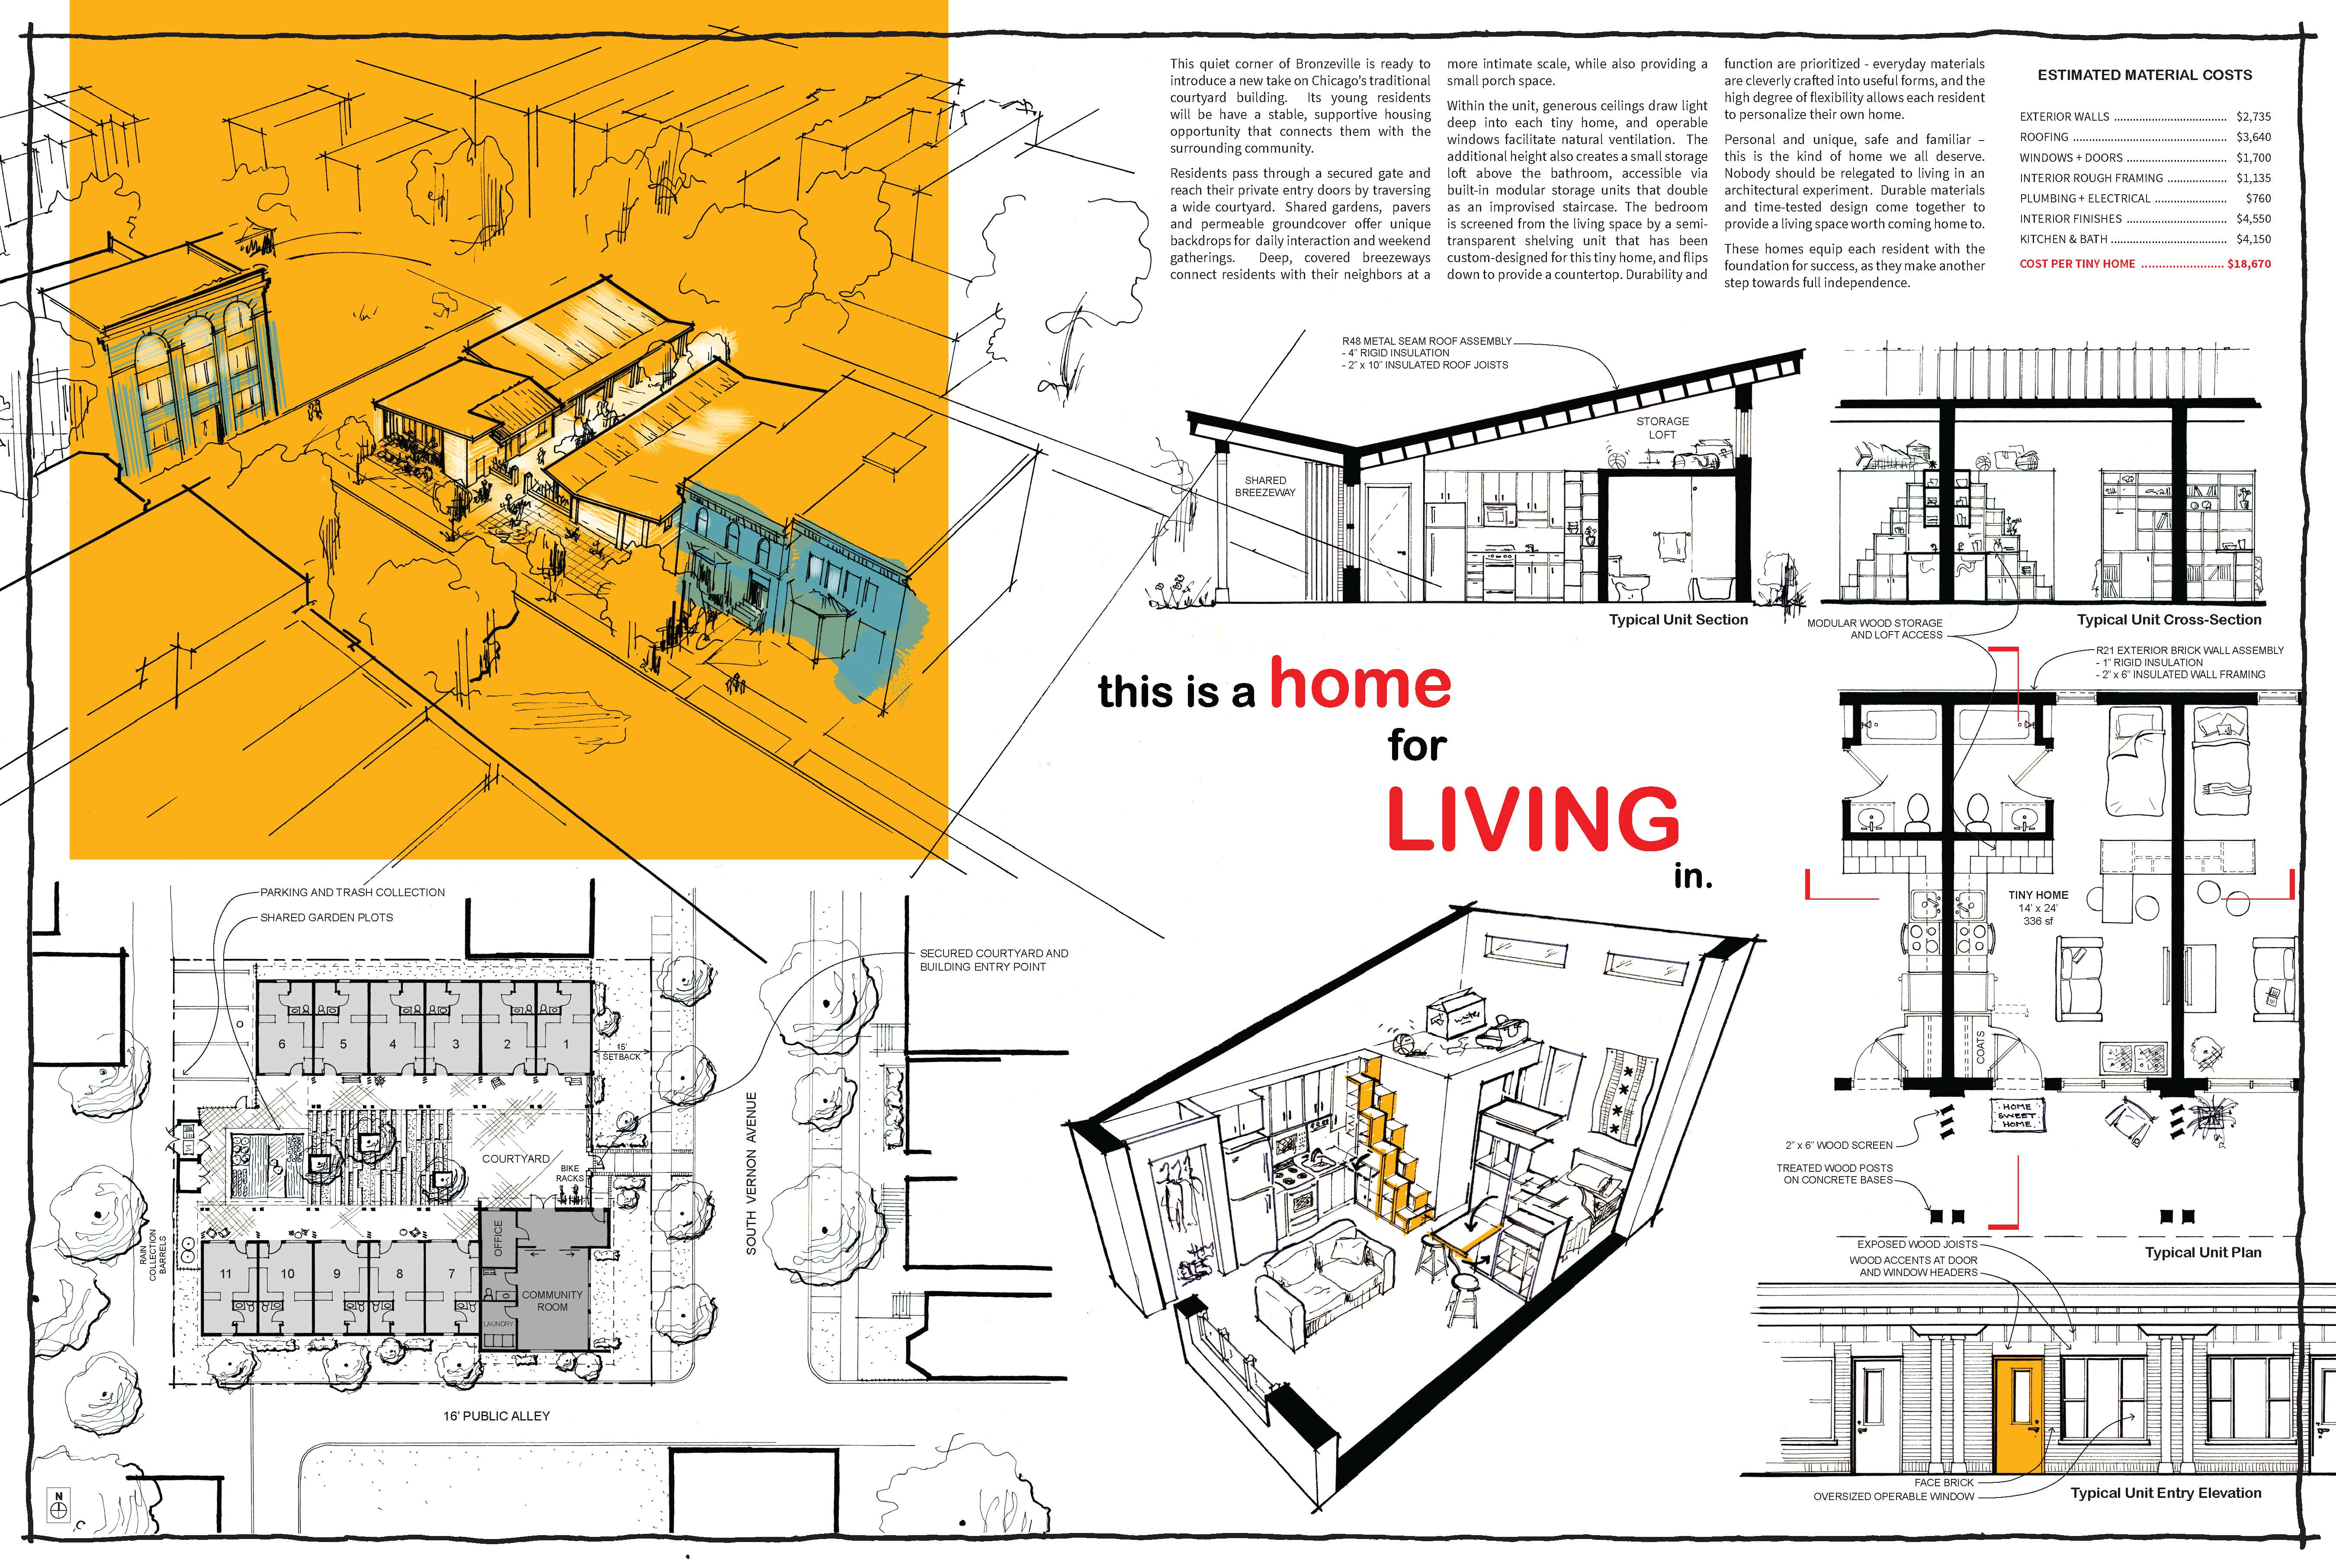 thesis report on old age home Commentary and archival information about the elderly from the new york times news about the elderly the new old age america at home: grandparents in the attic, children in the basement multigenerational and shared housing arrangements are on the rise, reversing.